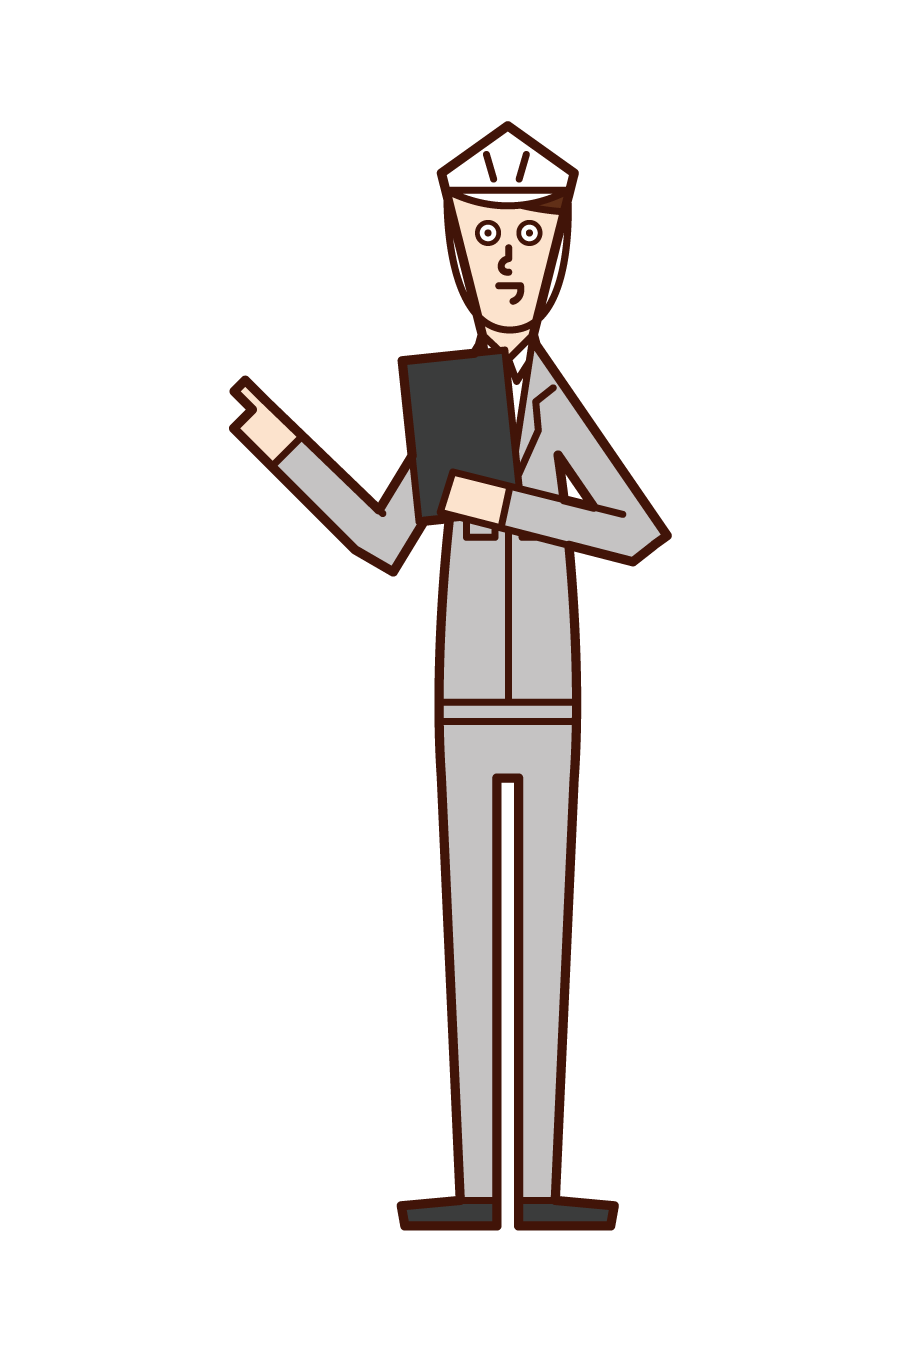 Illustration of a person (man) who confirms safety and calls